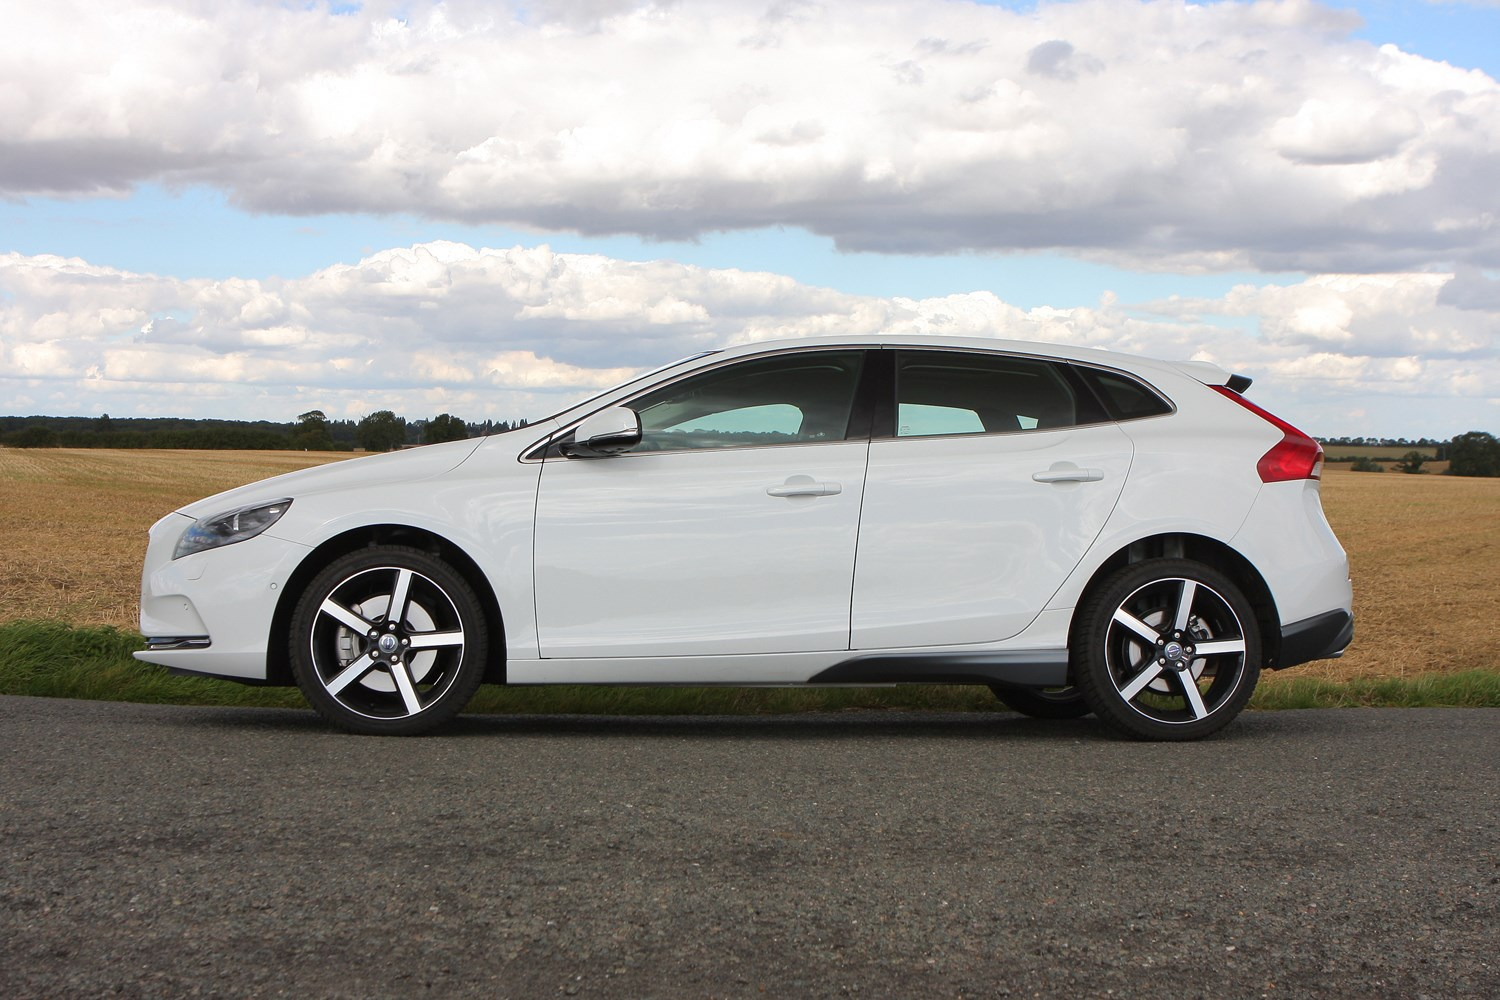 Car Photo Design >> Volvo V40 Hatchback (2012 - ) Photos | Parkers